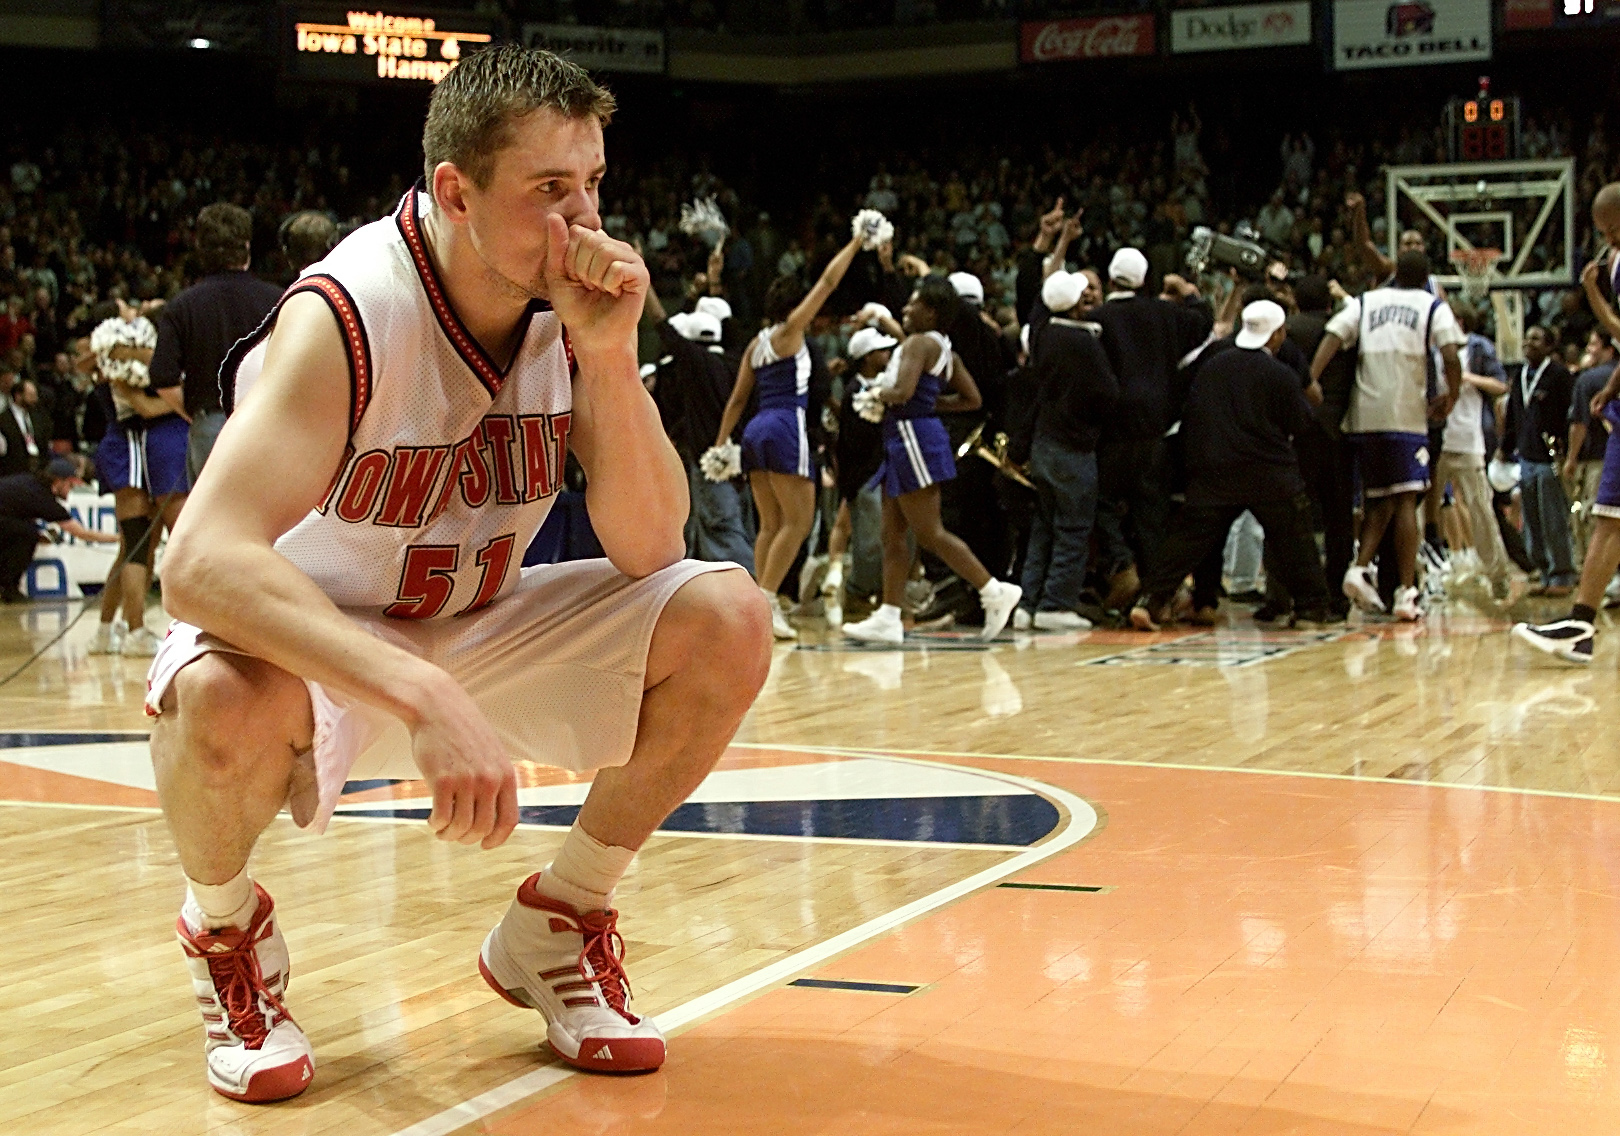 15 Mar 2001:  Forward Martin Rancik #51 of the Iowa State Cyclones ponders losing as the Hampton Pirates celebrate during the first round of the NCAA Tournament at the Boise State University Pavilion in Boise, Idaho. The Pirates upset the Cyclones 58-57.